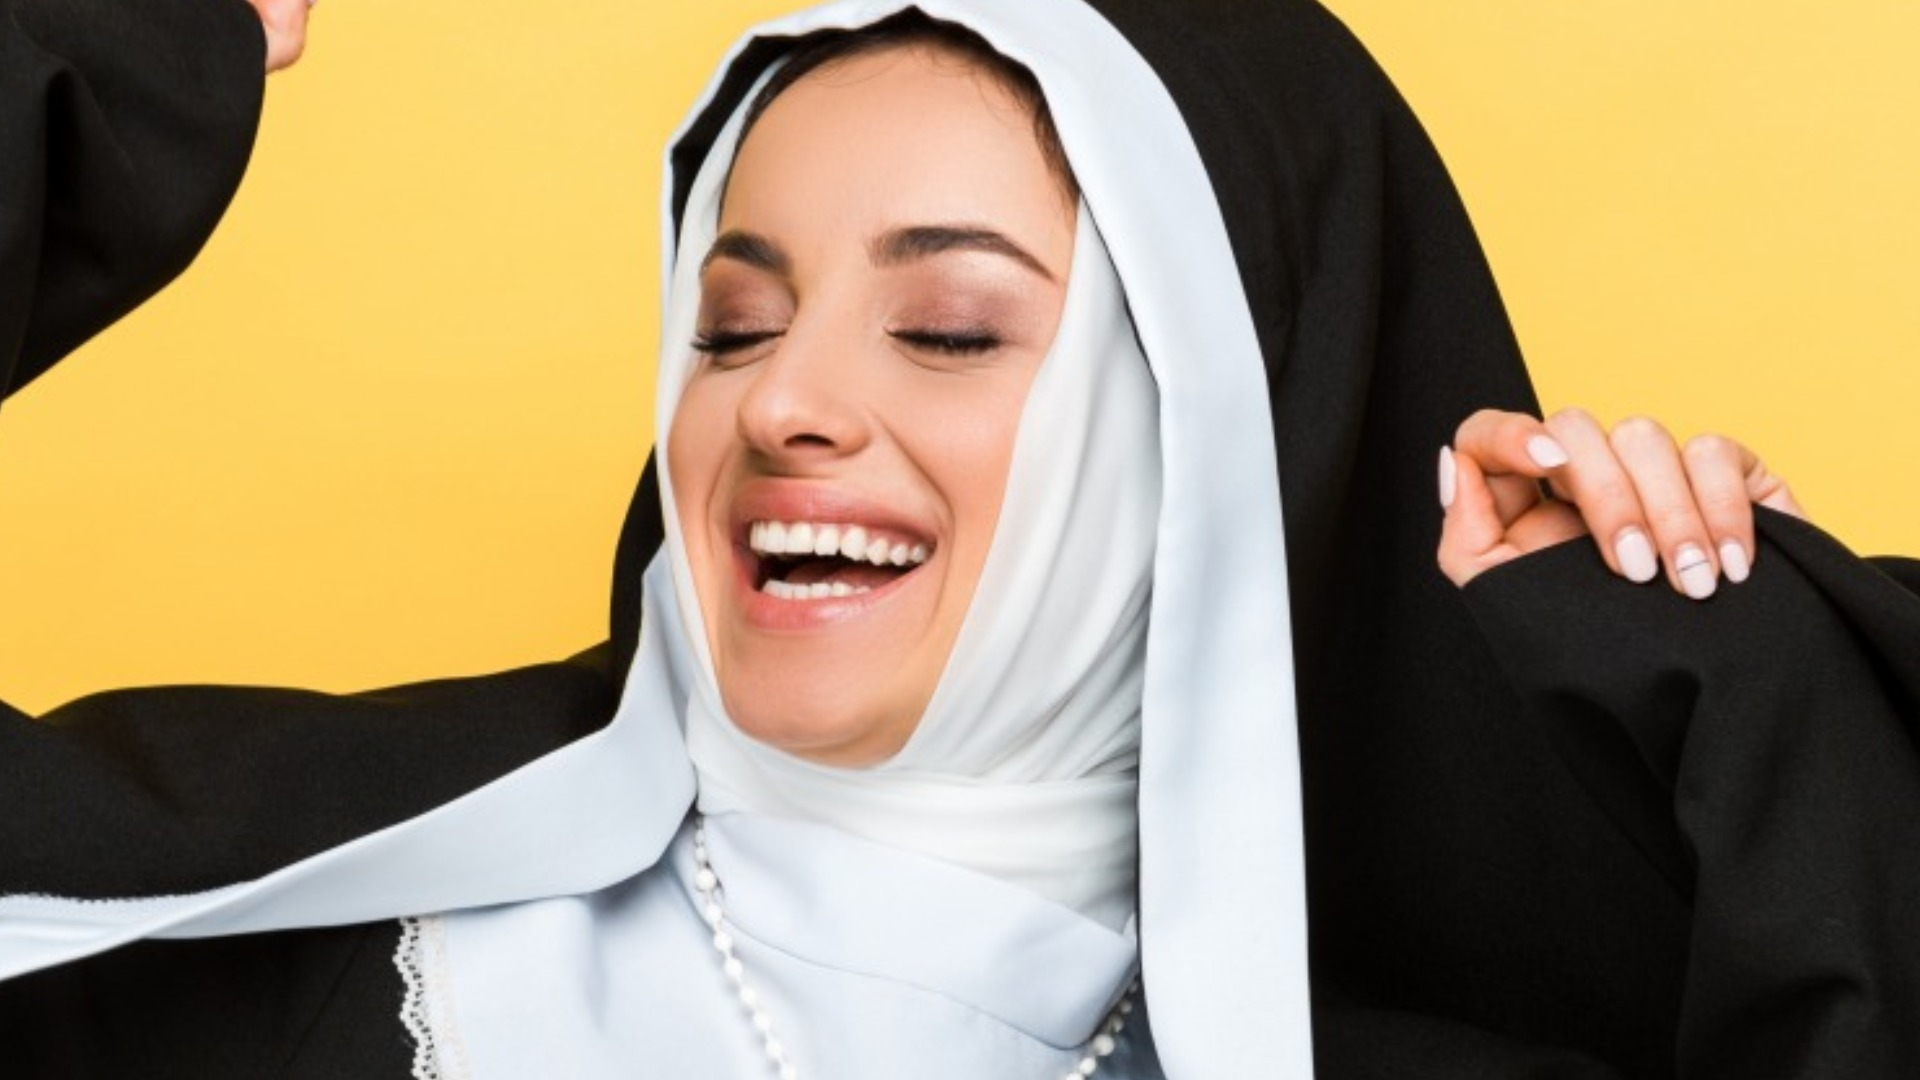 Rules You Didn't Know Many Nuns Have To Follow